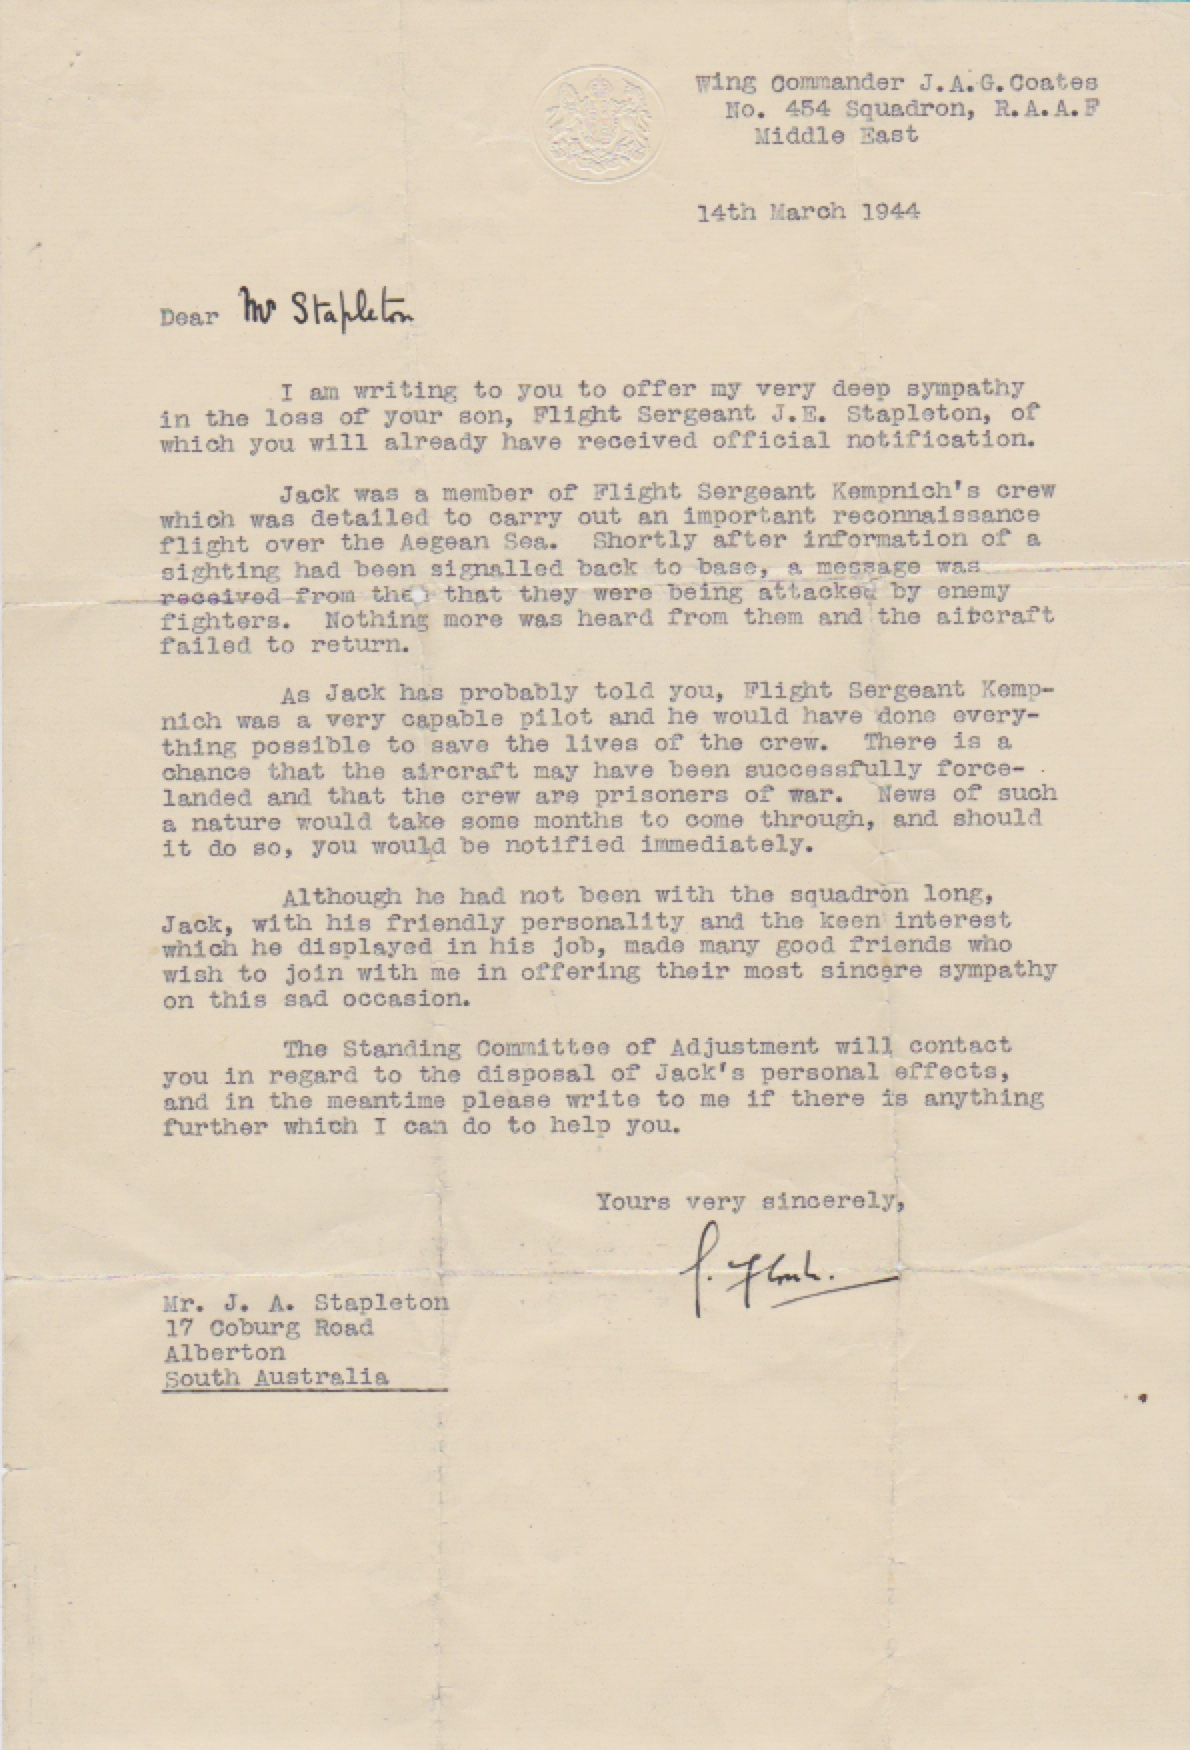 letter from Wing Commander JAG Coates to Mr JA Stapleton, 14 March 1944